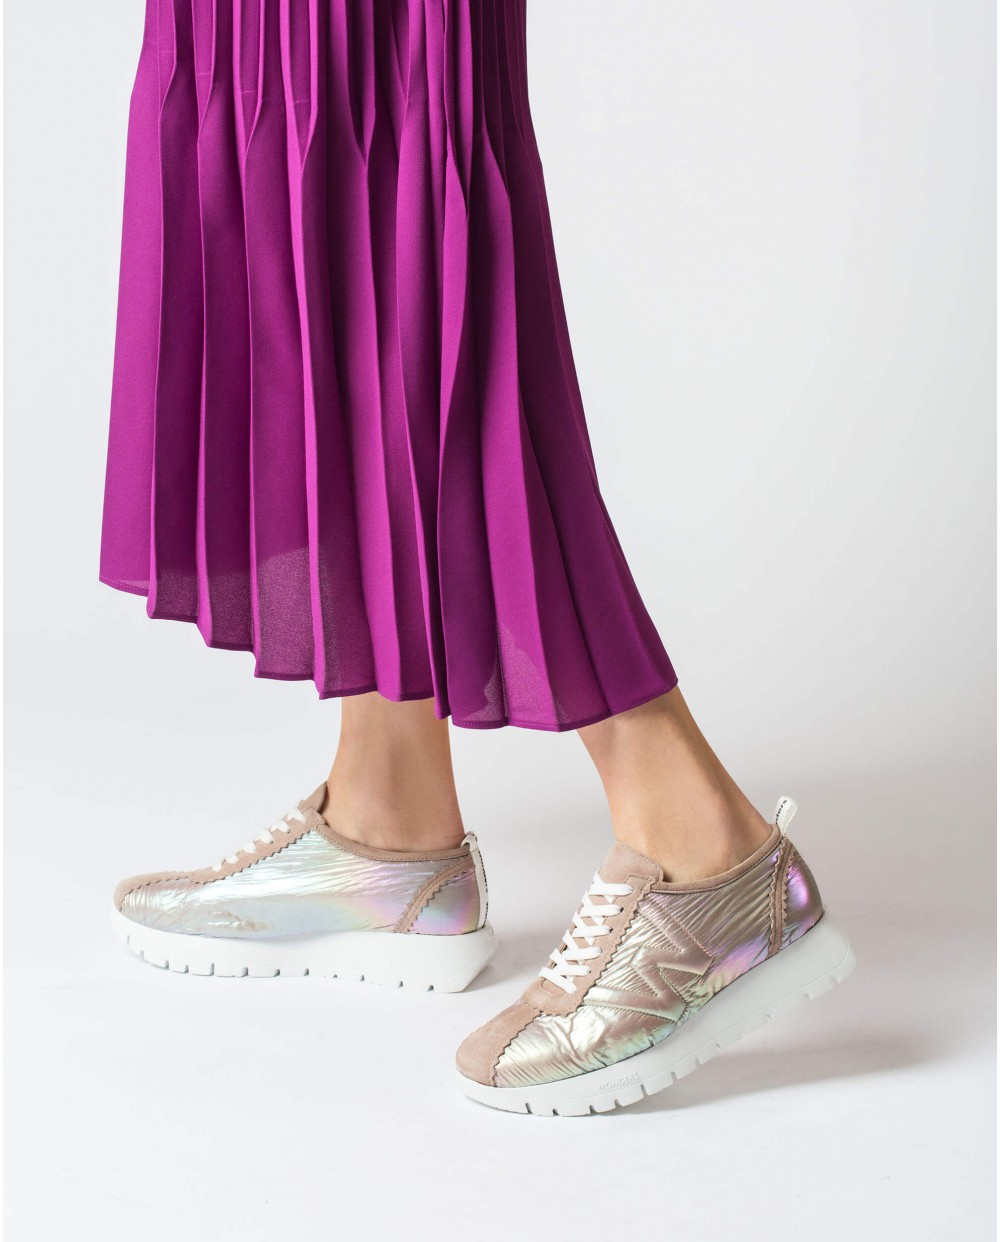 Wonders-Flat Shoes-Sneaker with shoelaces